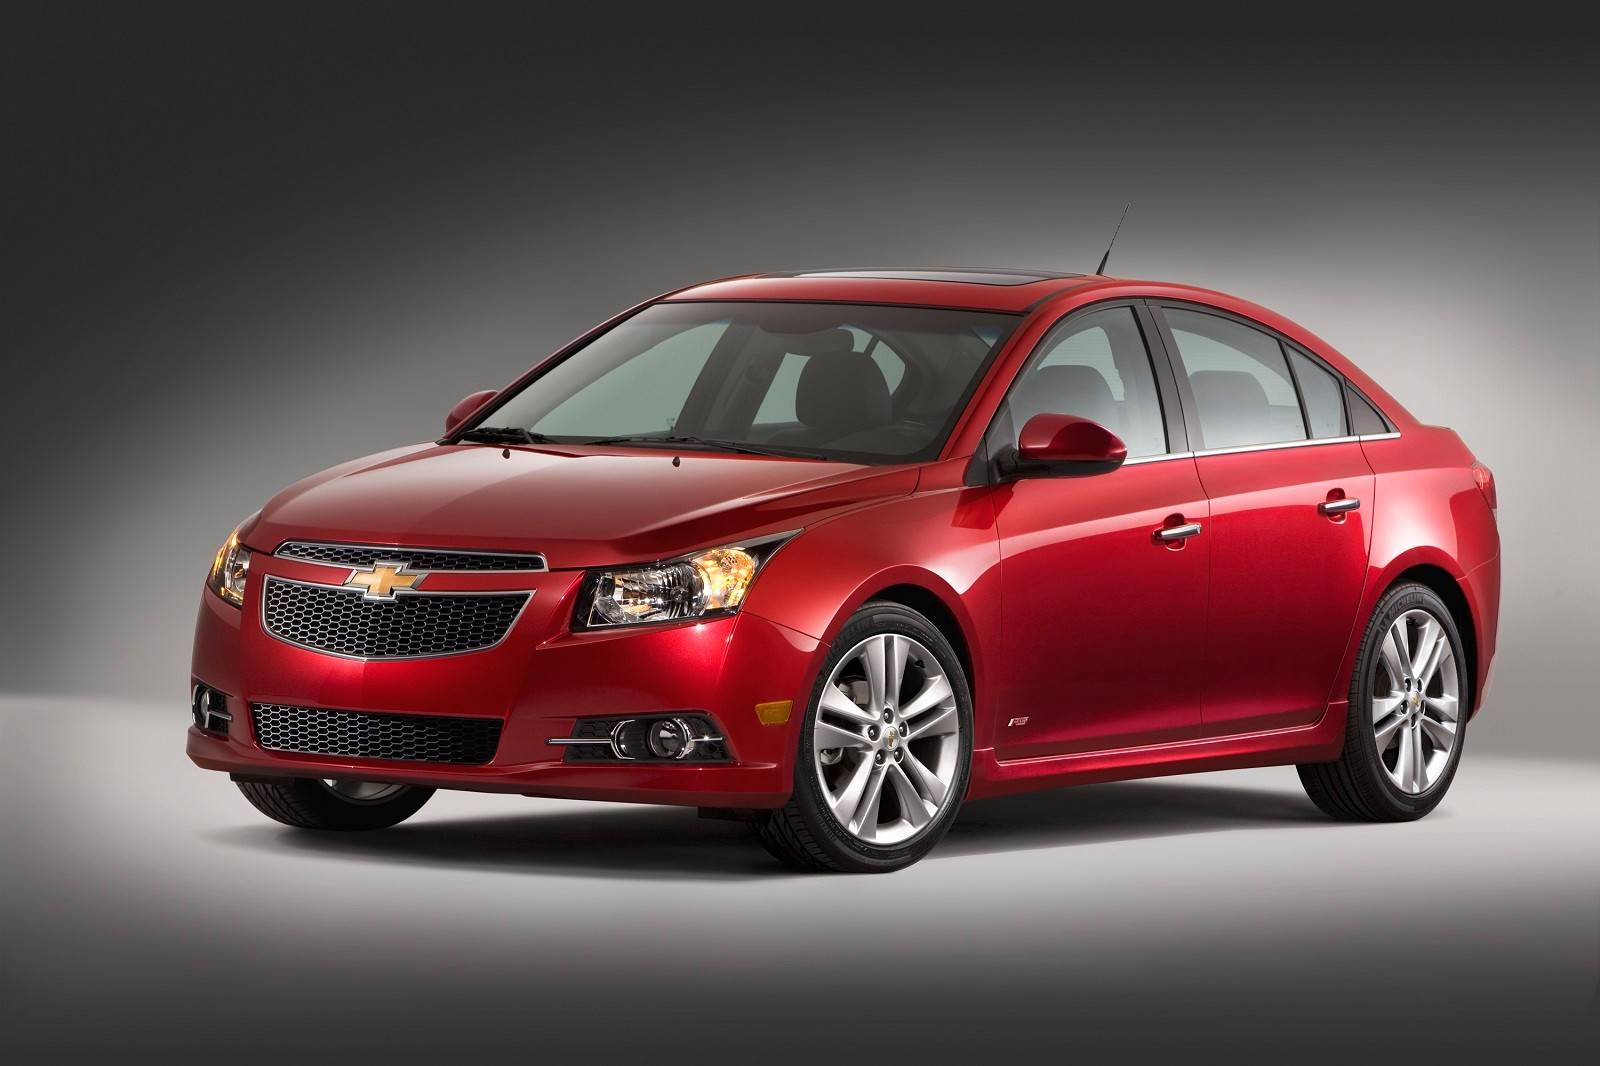 General Motors has told dealers to stop selling some 2013 and 2014 Chevrolet Cruze compact cars.